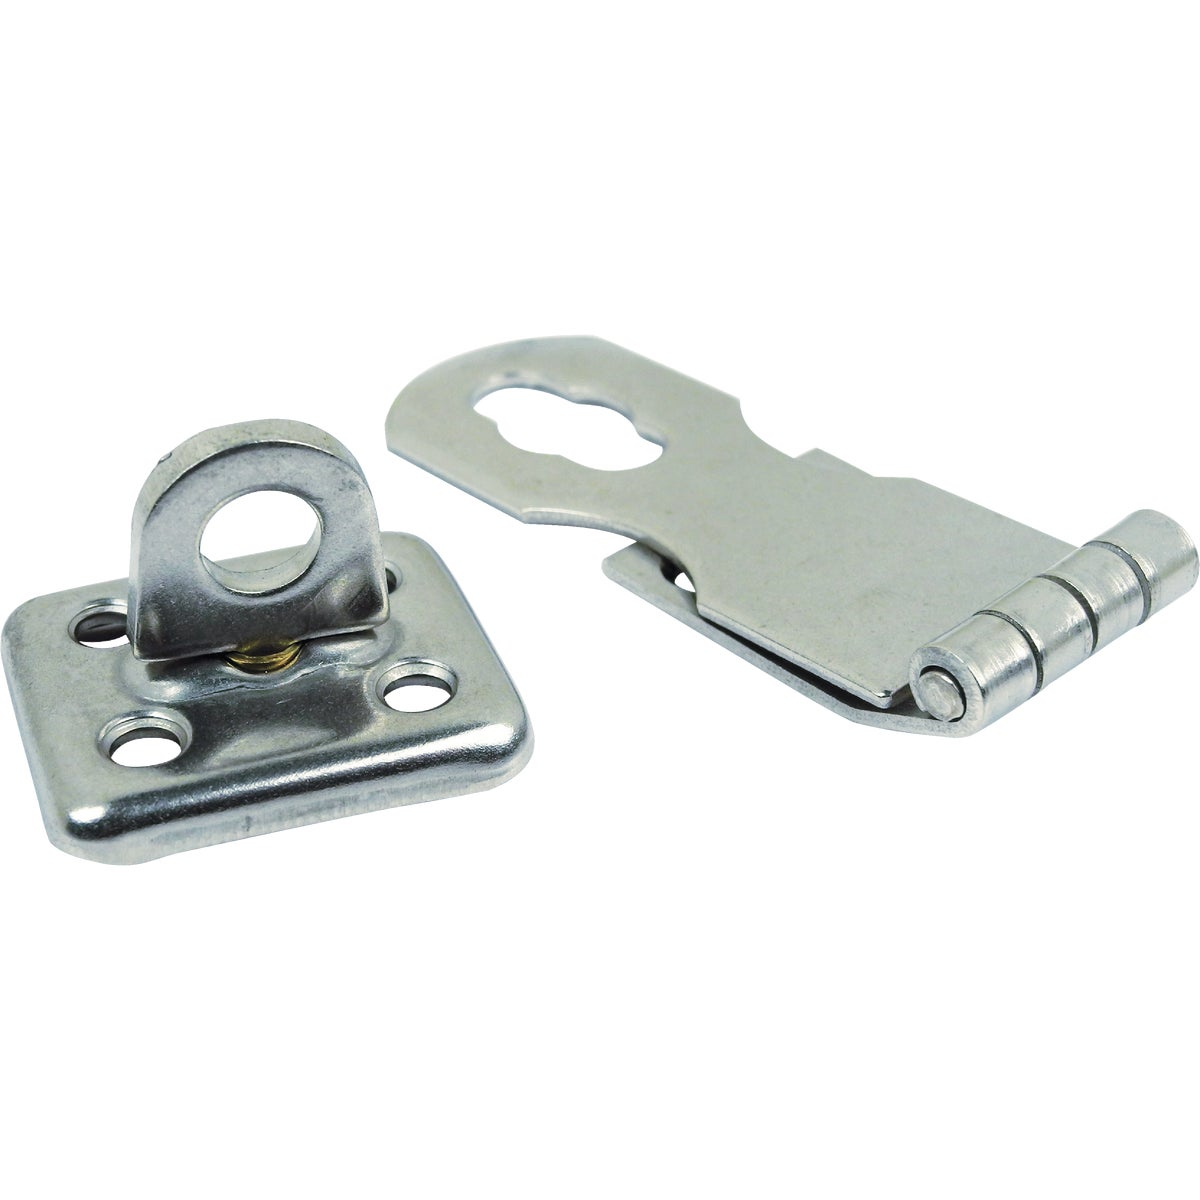 1X2-3/4 SWIVEL HASP - 37111 by Seachoice Prod